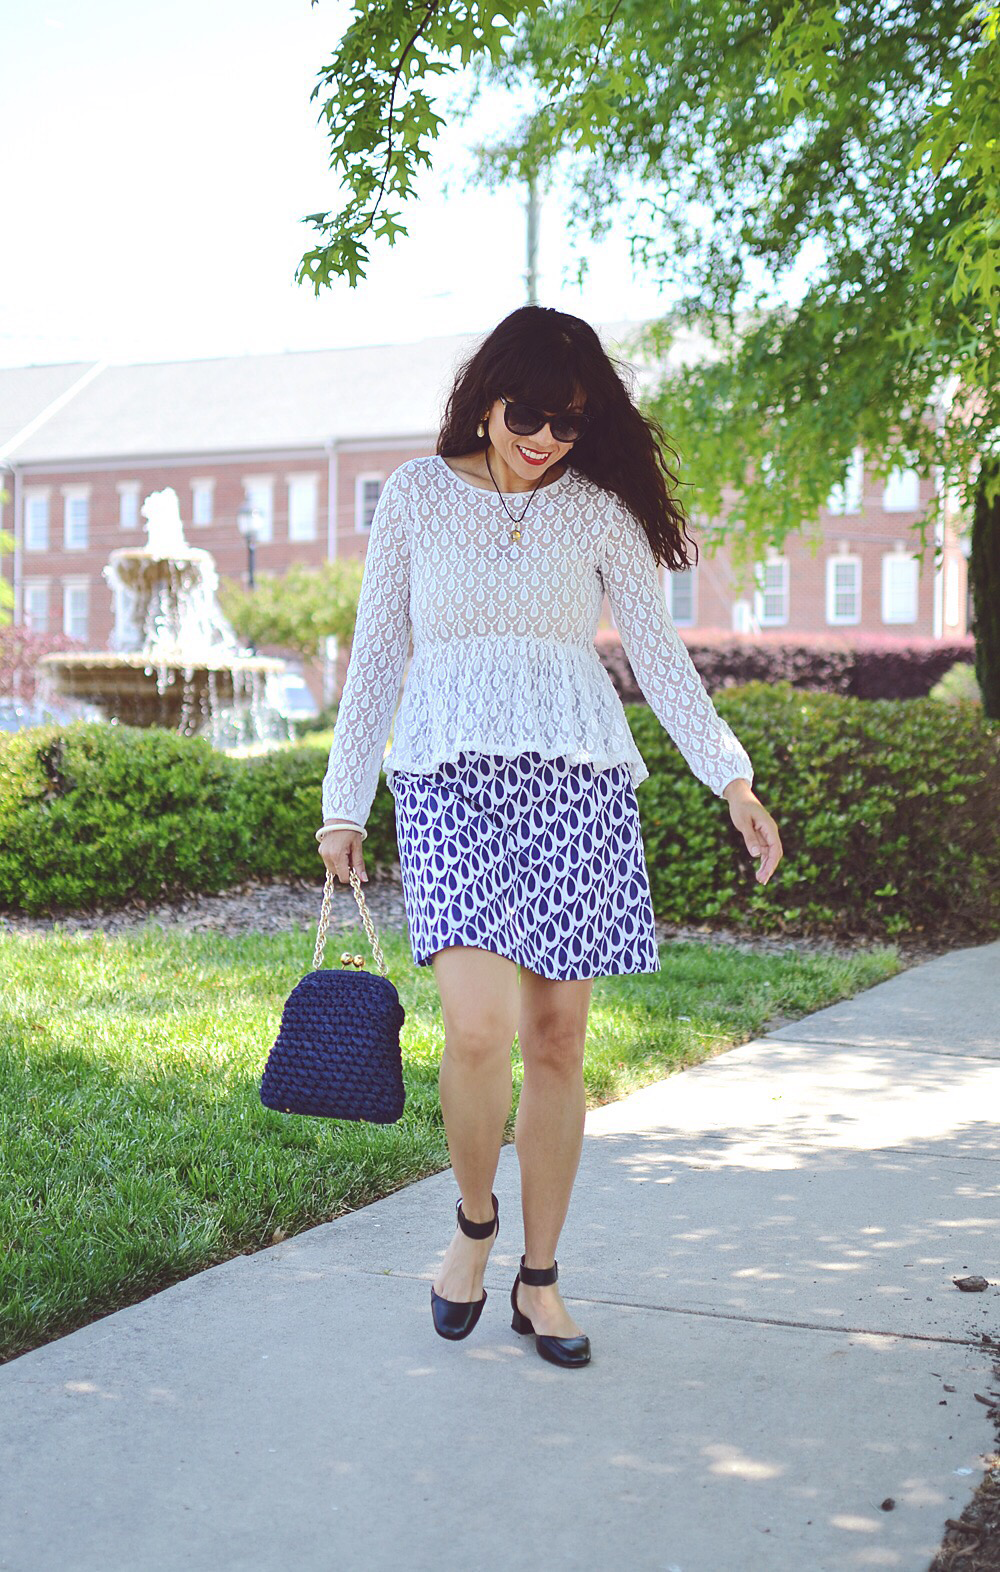 Needham Lane skirt